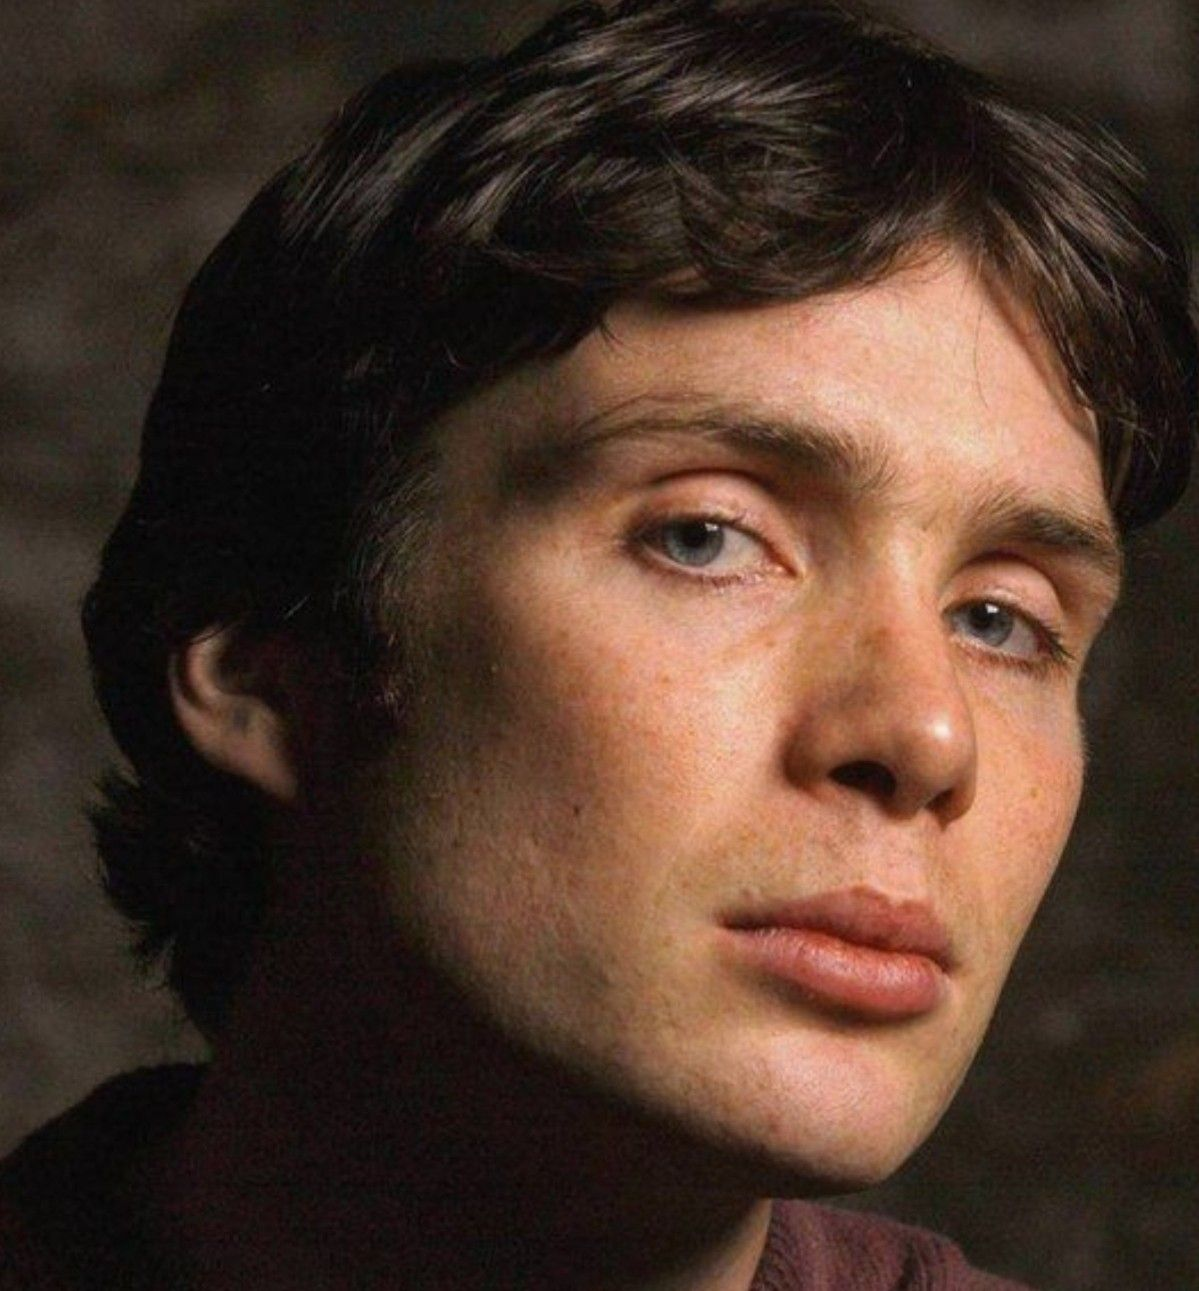 Pin By Tracy Nale On Murphy Actor In 2020 Cillian Murphy Murphy Actor Cillian Murphy Young